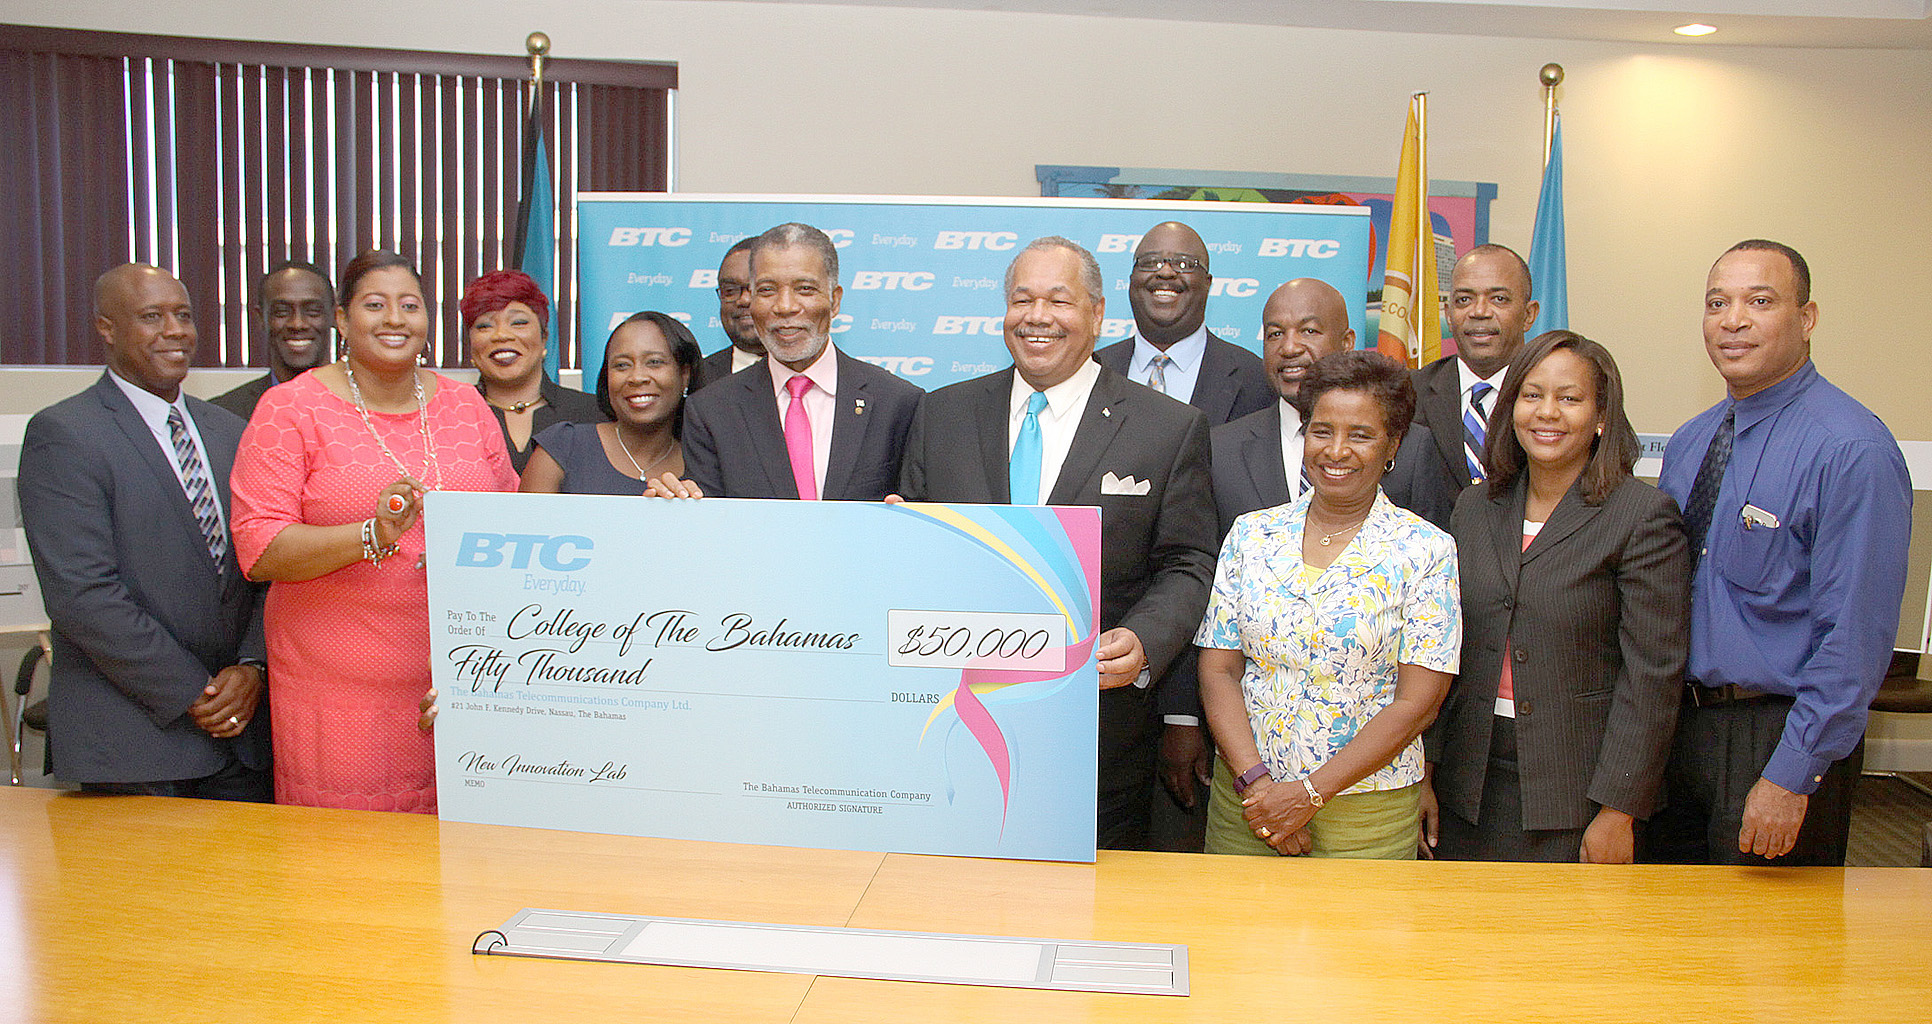 CEO of Bahamas Telecommunications Company Ltd. (BTC) Leon Williams (left) and College of The Bahamas (COB) President Dr. Rodney Smith share handshake following the signing of a Memorandum of Understanding at the College of The Bahamas on July 14, 2016.  They are flanked by representatives of BTC and COB.